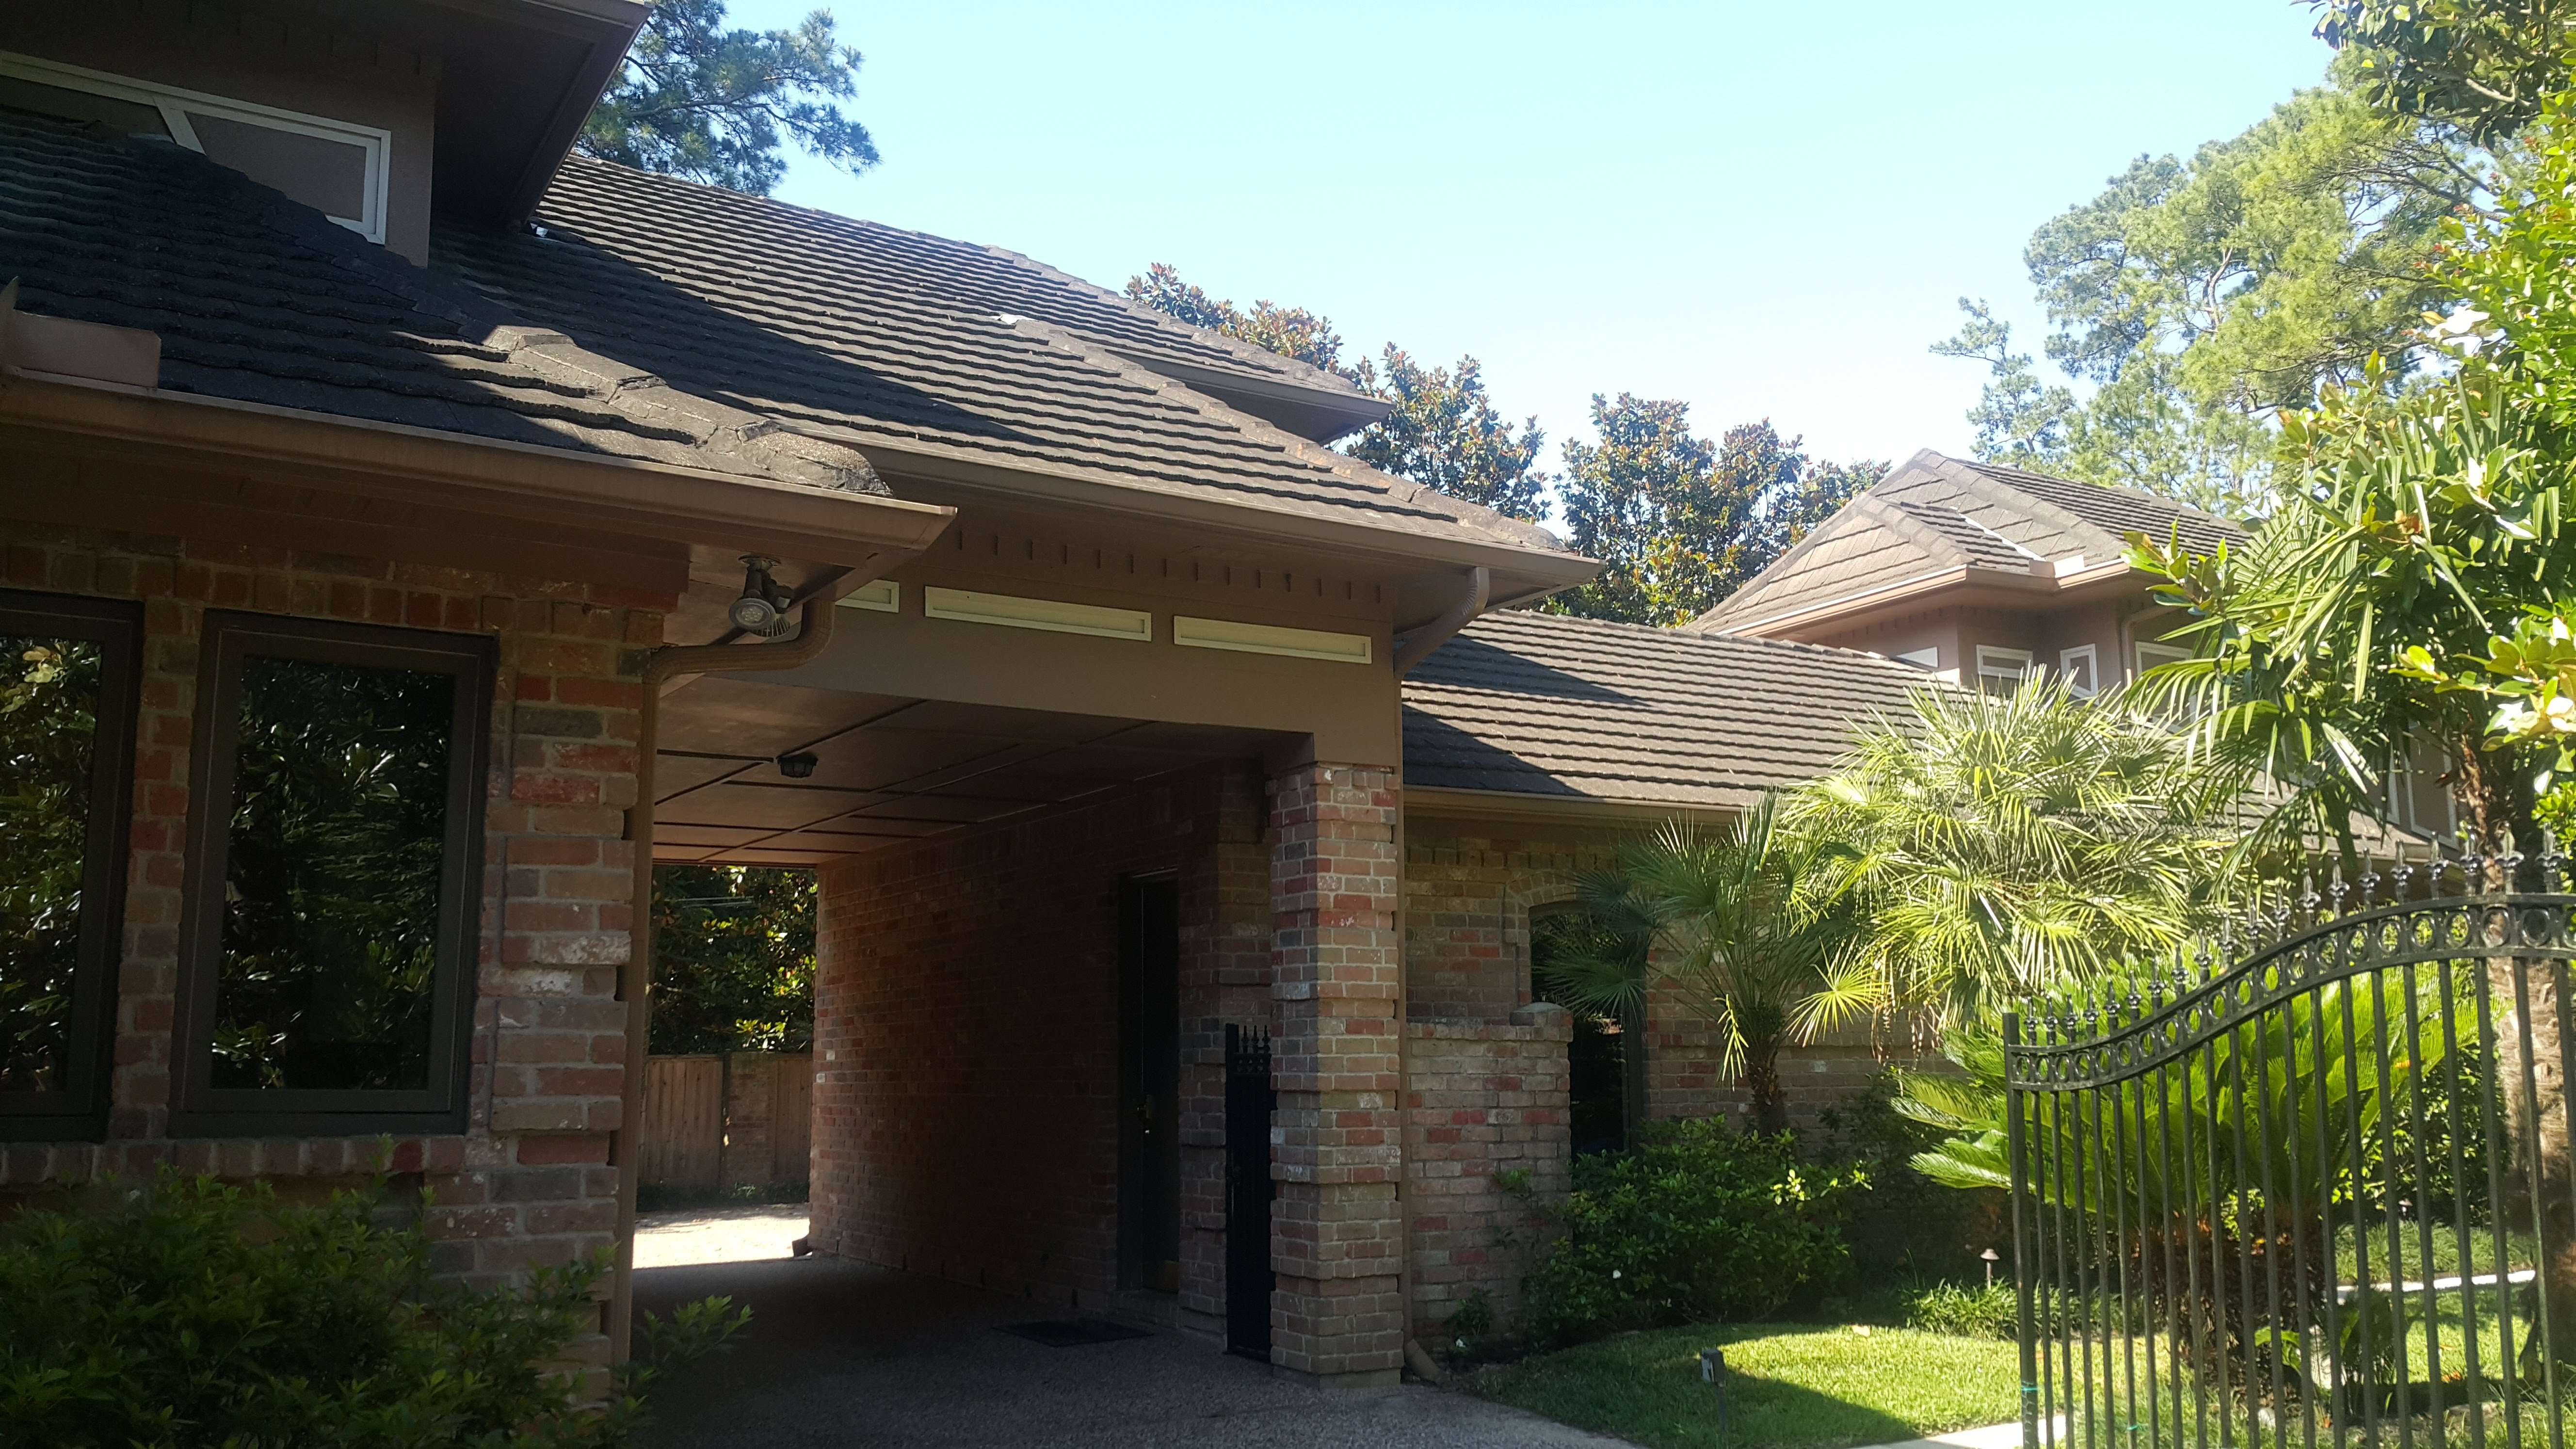 Top Window Cleaning Company in Cypress, Texas